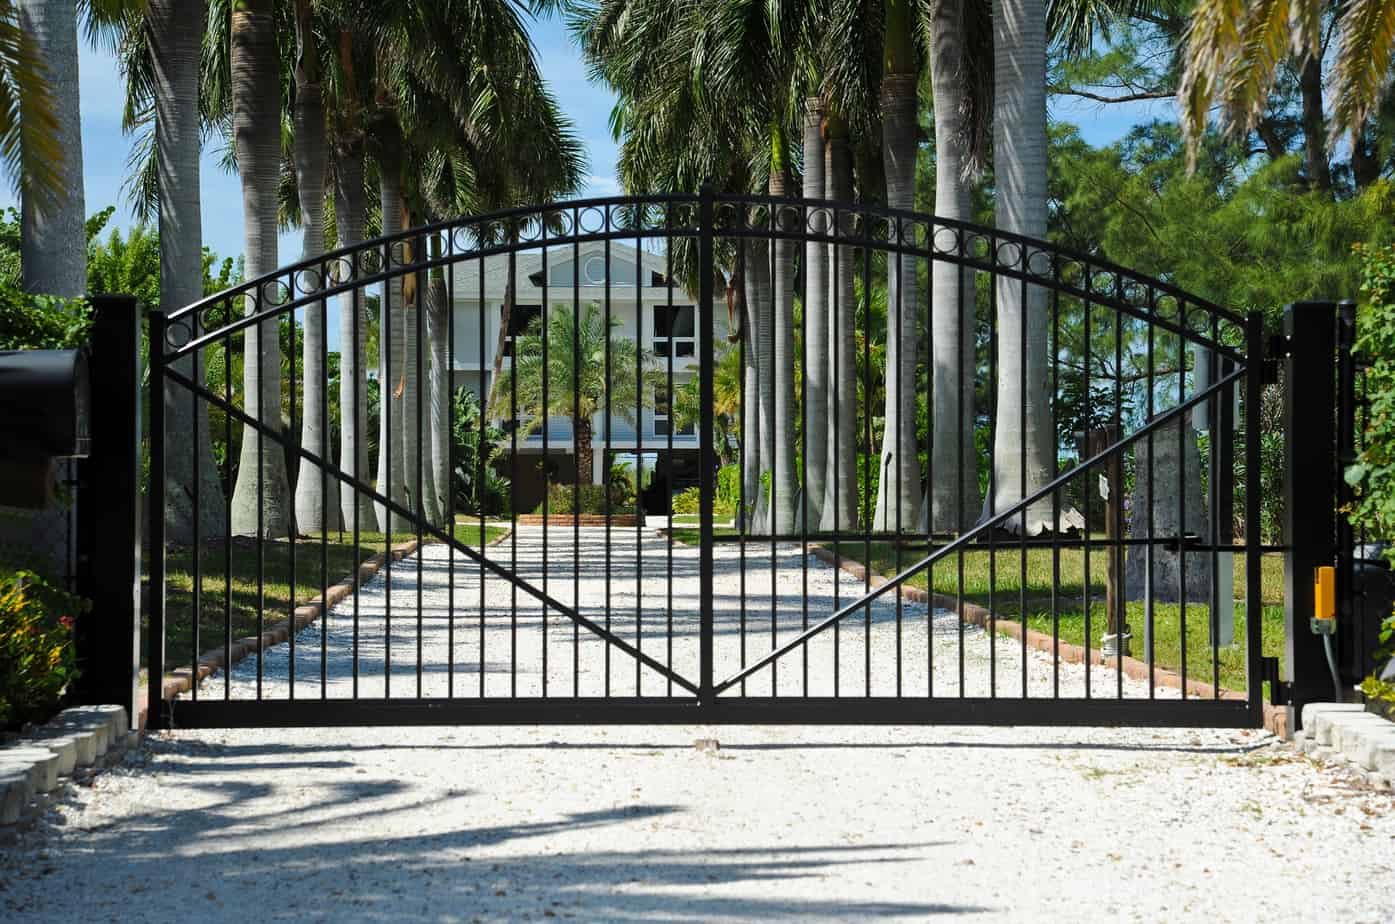 R S Is The San Francisco Bay Area Leader When It Comes To Licensed Professional Gate Installation Our Team Will Work With Your From Design